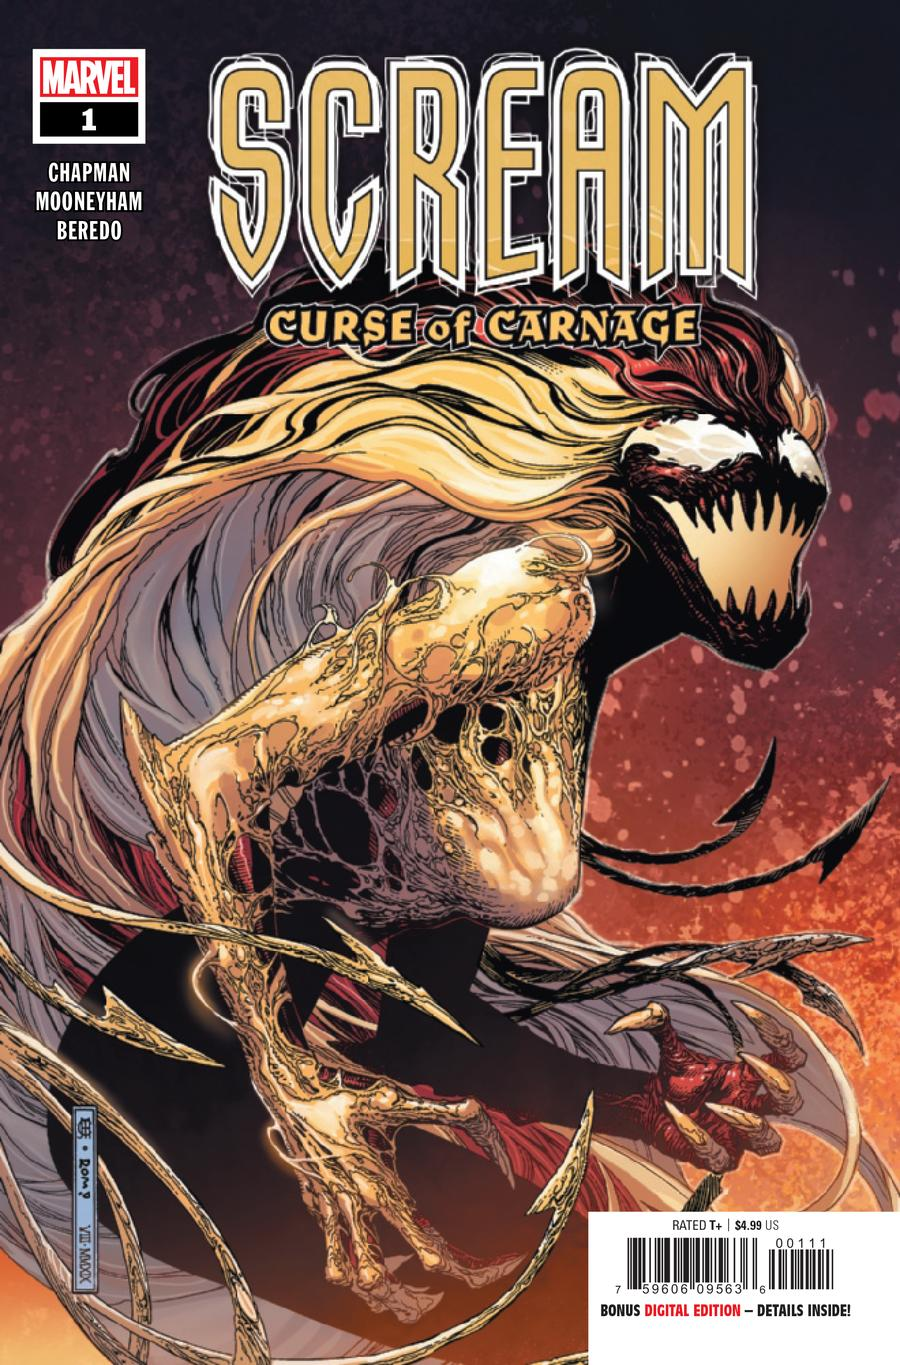 Scream: The Curse of Carnage # 1